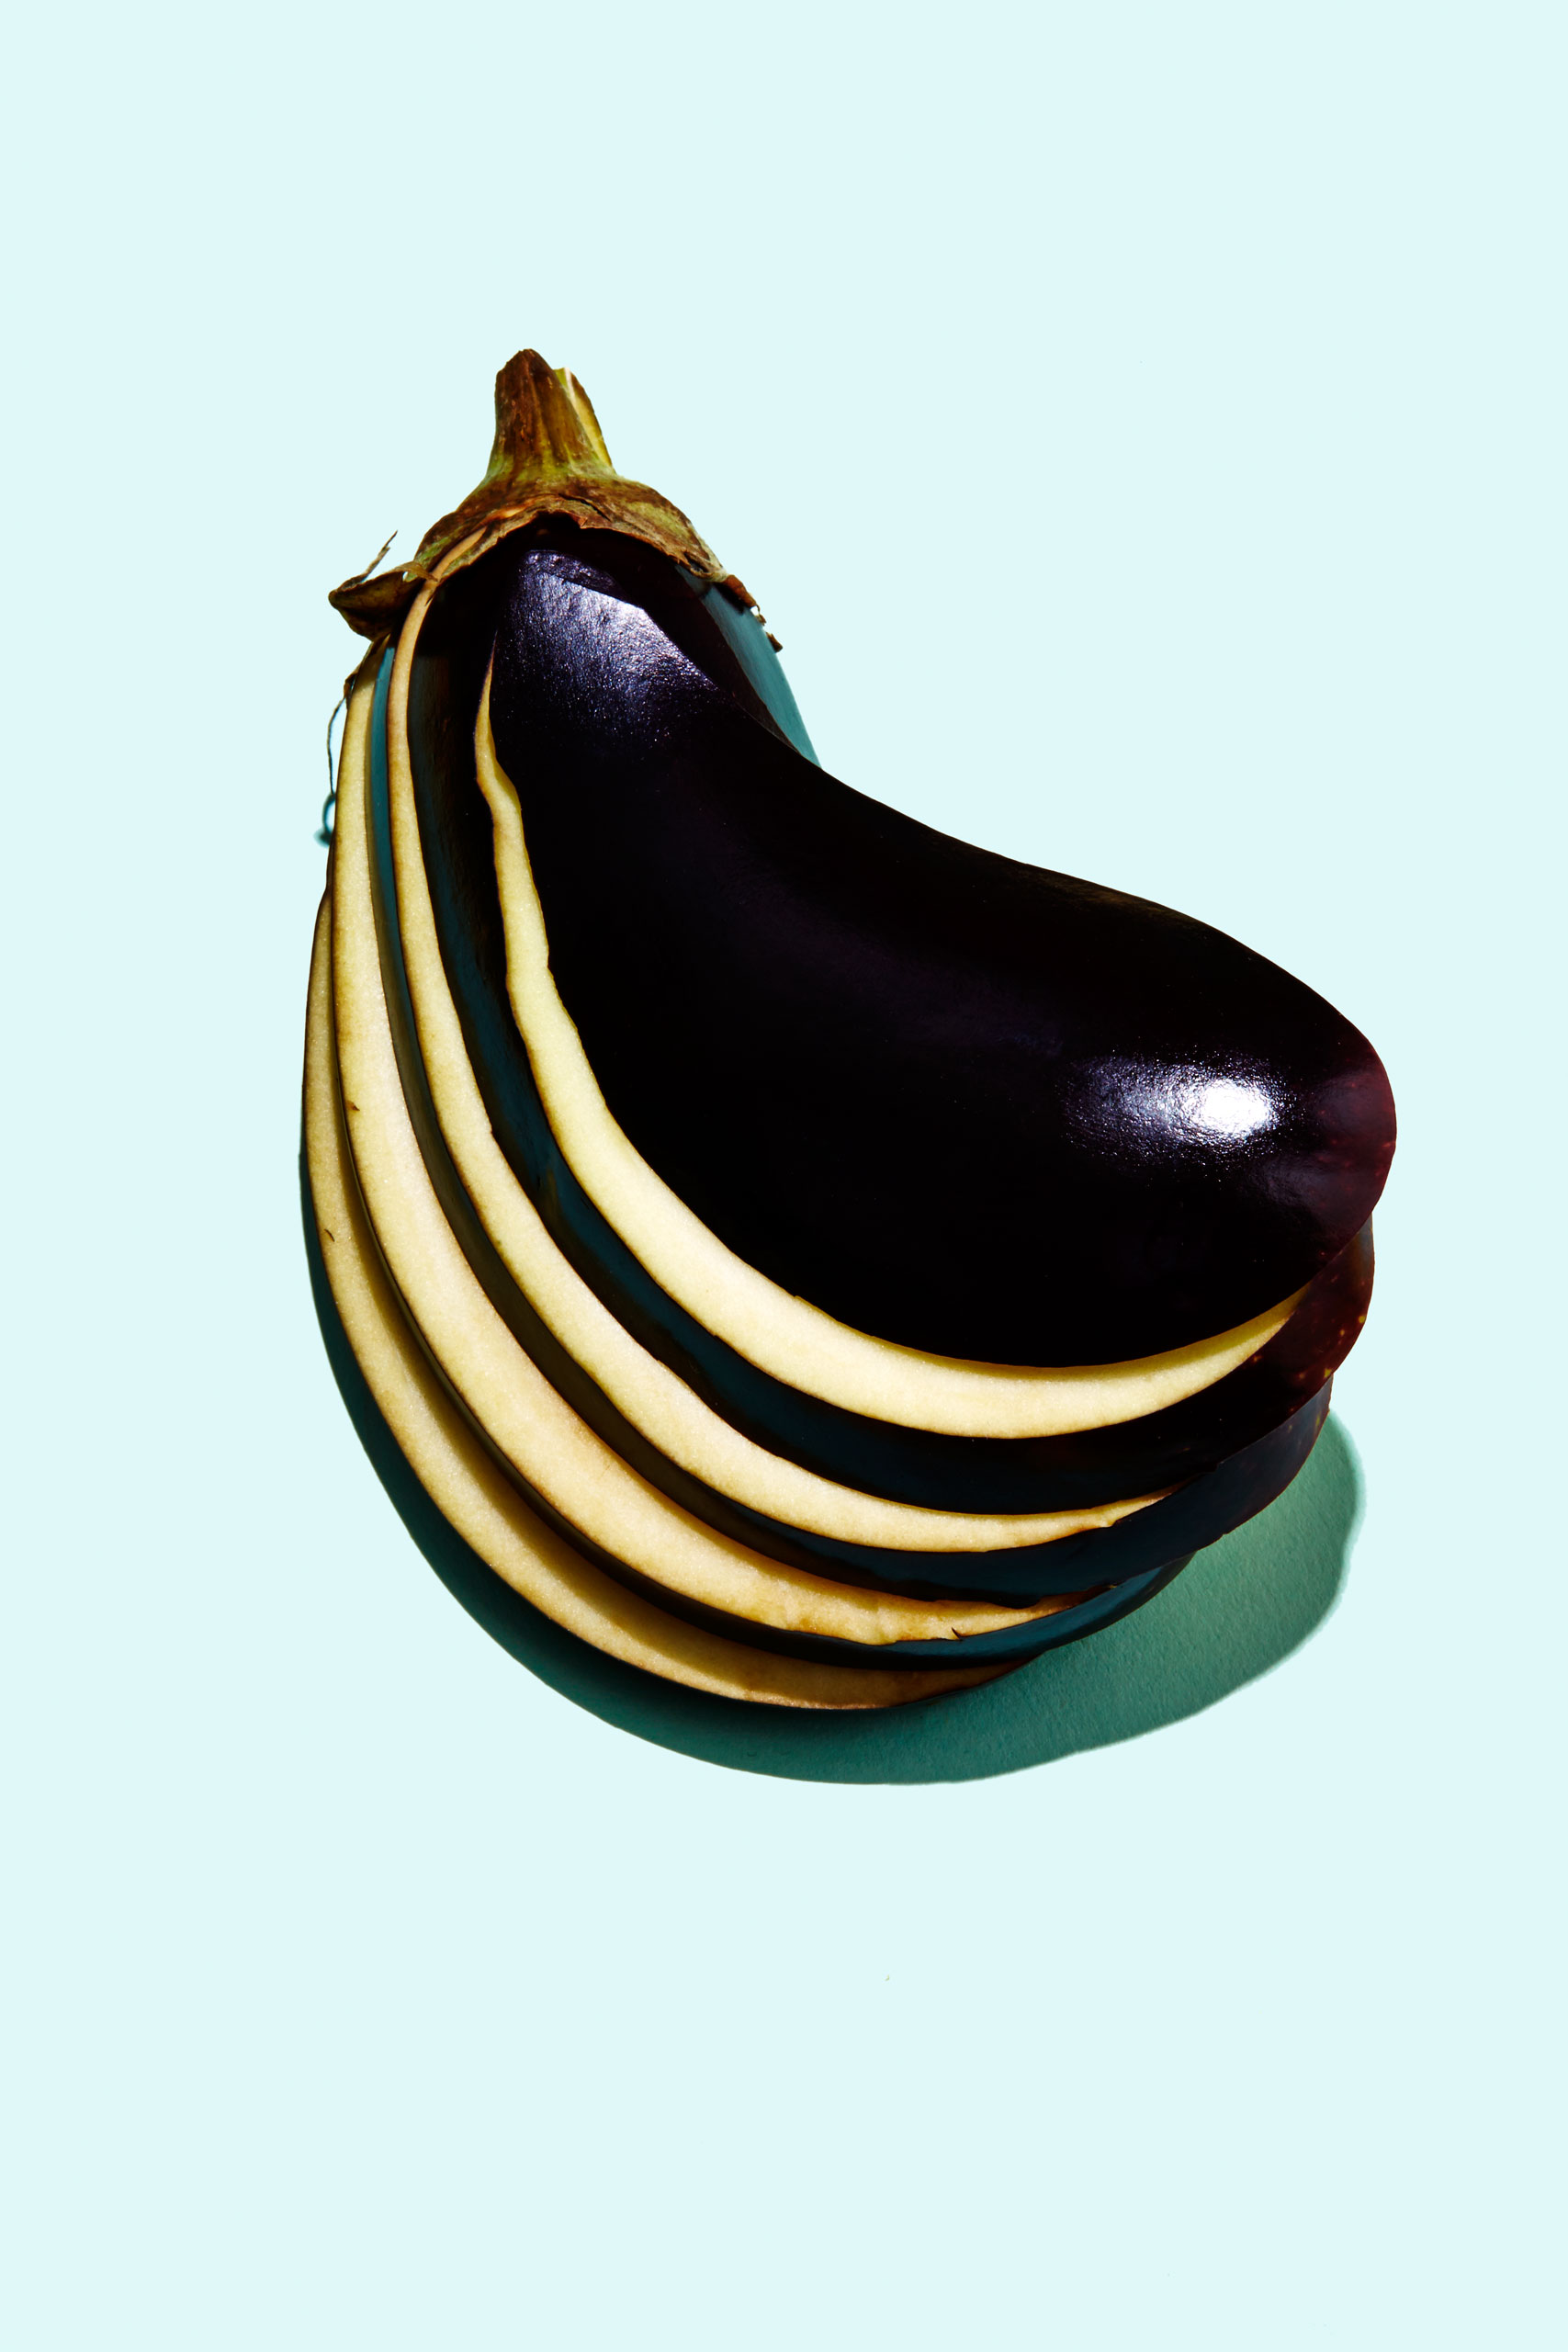 healthiest foods, health food, diet, nutrition, time.com stock, eggplant, vegetables